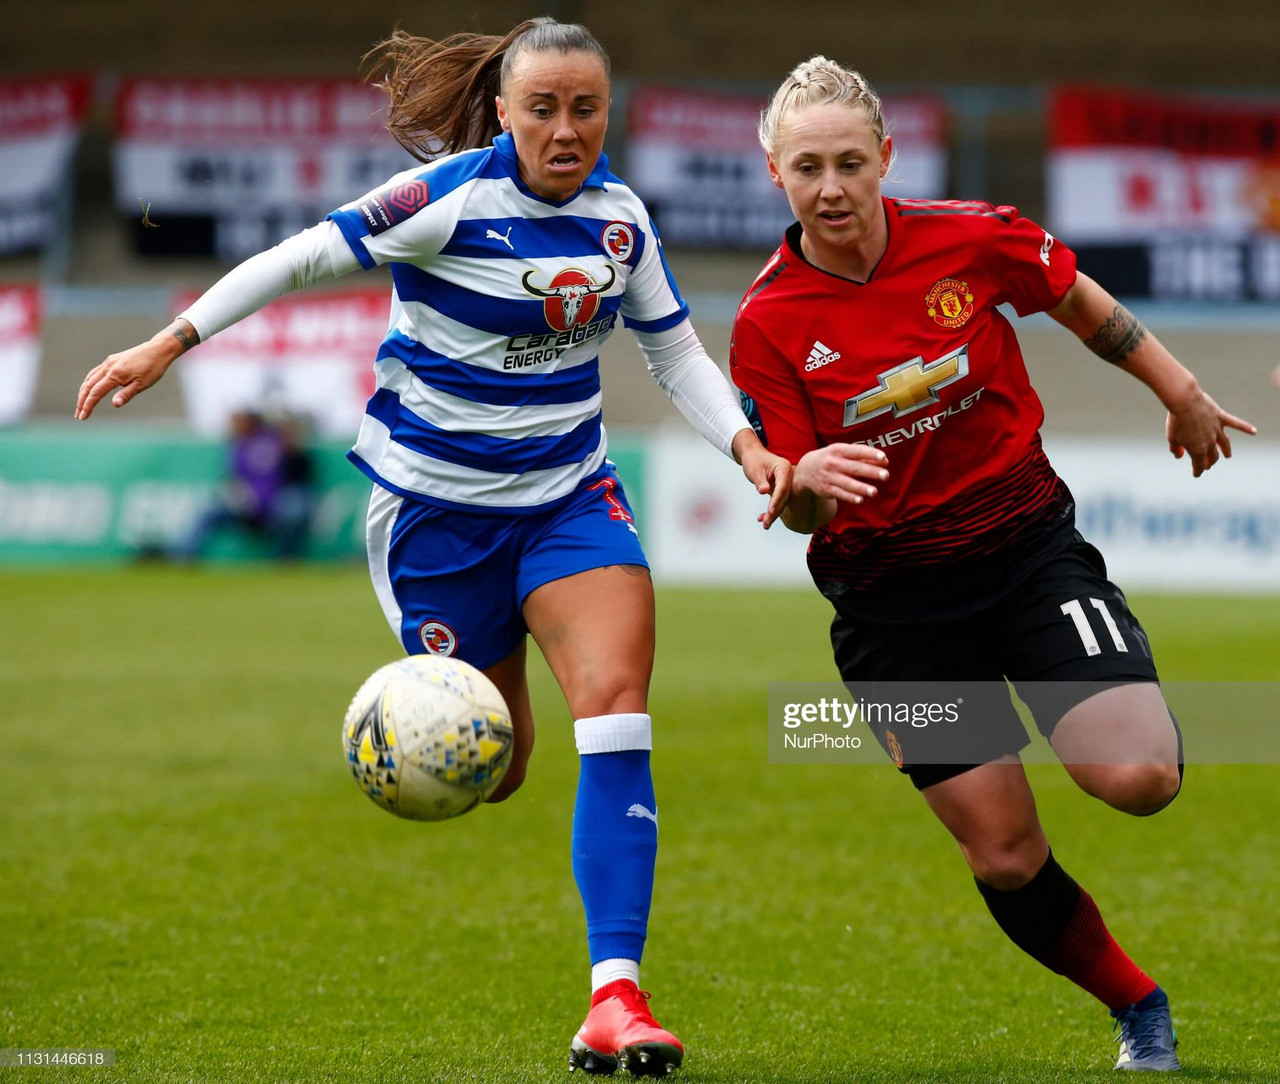 Manchester United vs Reading Women's Super League preview: team news, predicted line-ups, ones to watch, previous meetings and how to watch